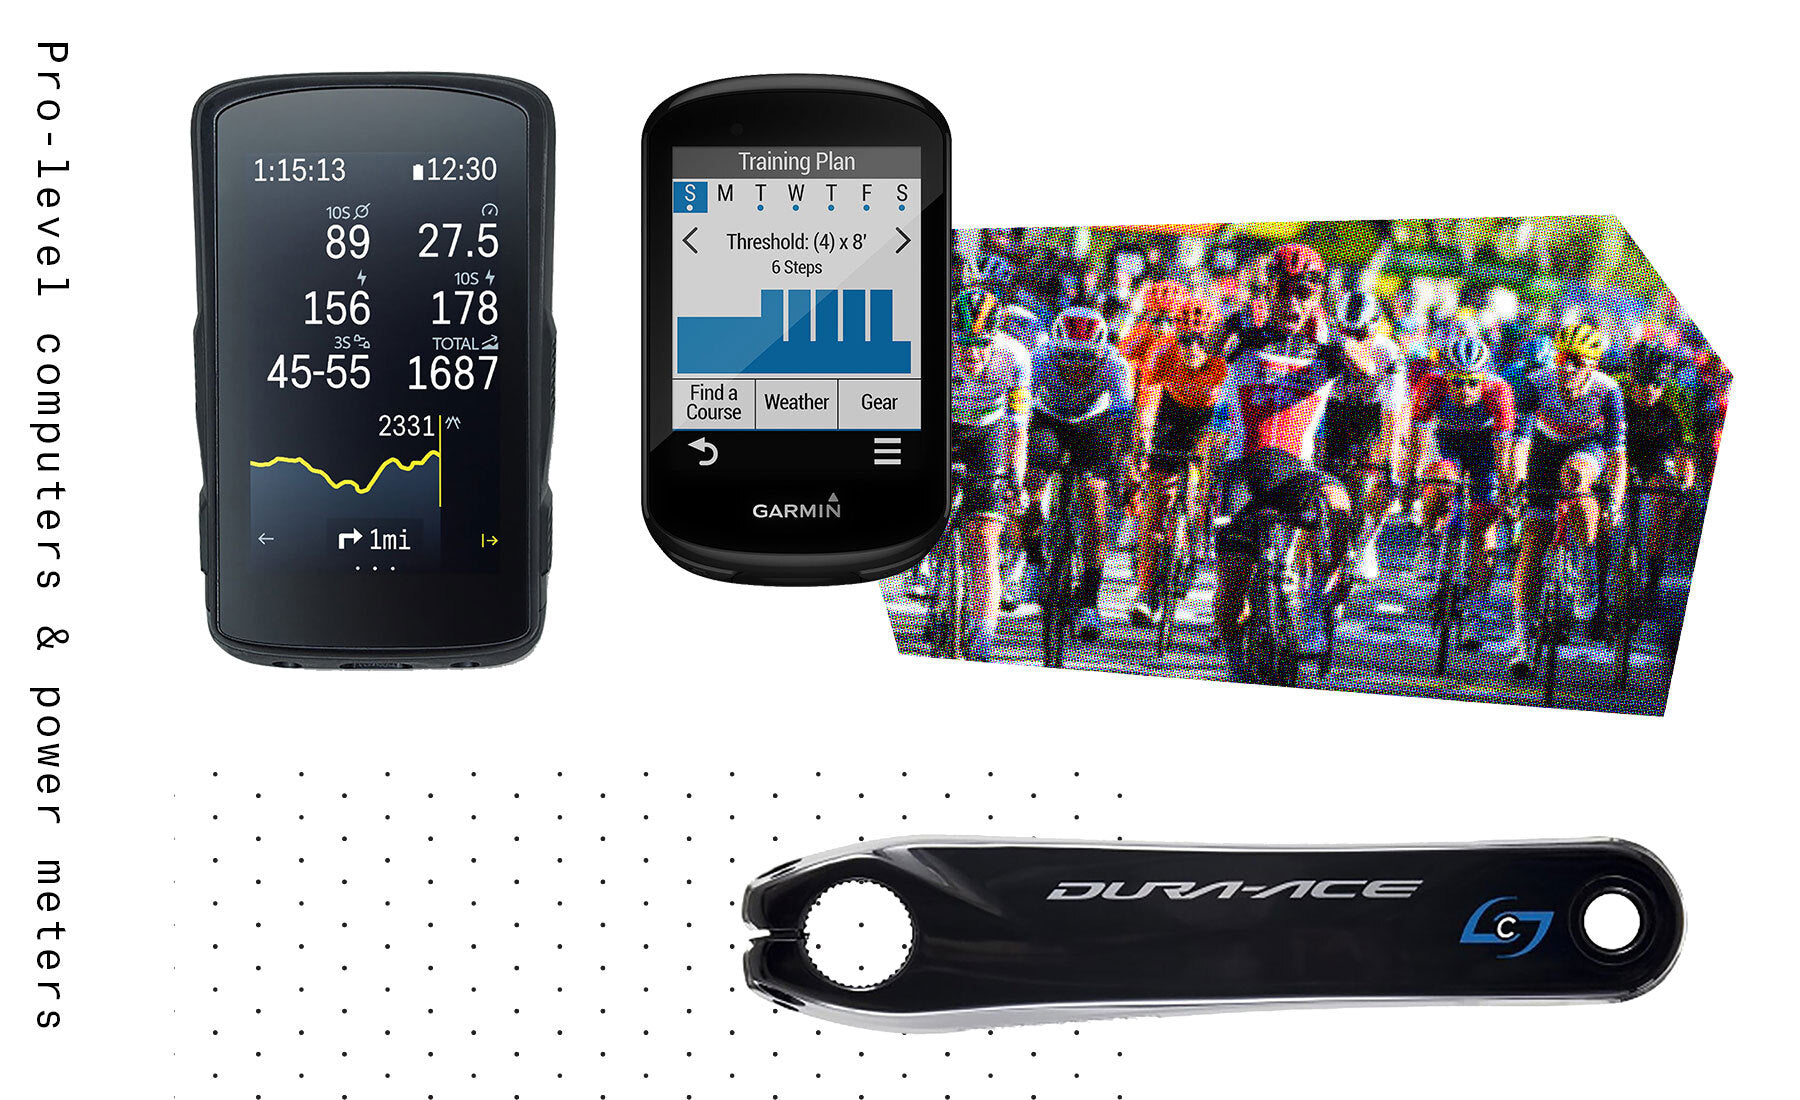 Tour de france pro level cycling computers and power meters for sale